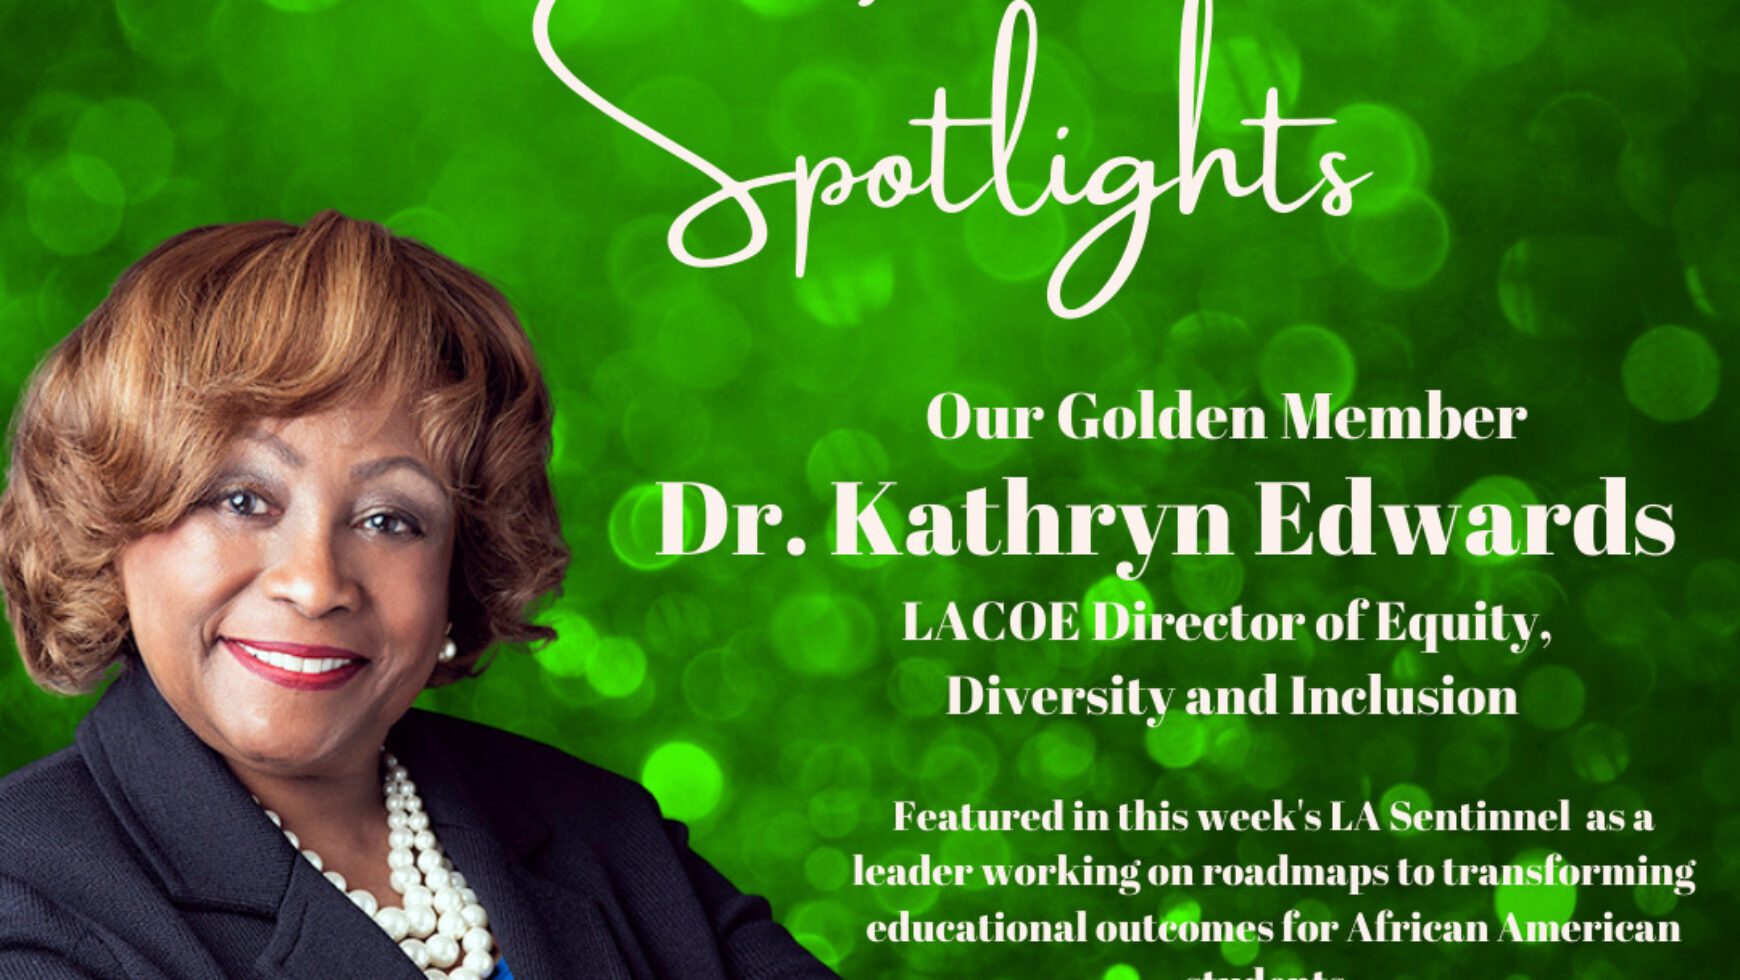 MLO Spotlights Kathryn Edwards, LACOE Director of Equity, Diversity and Inclusion